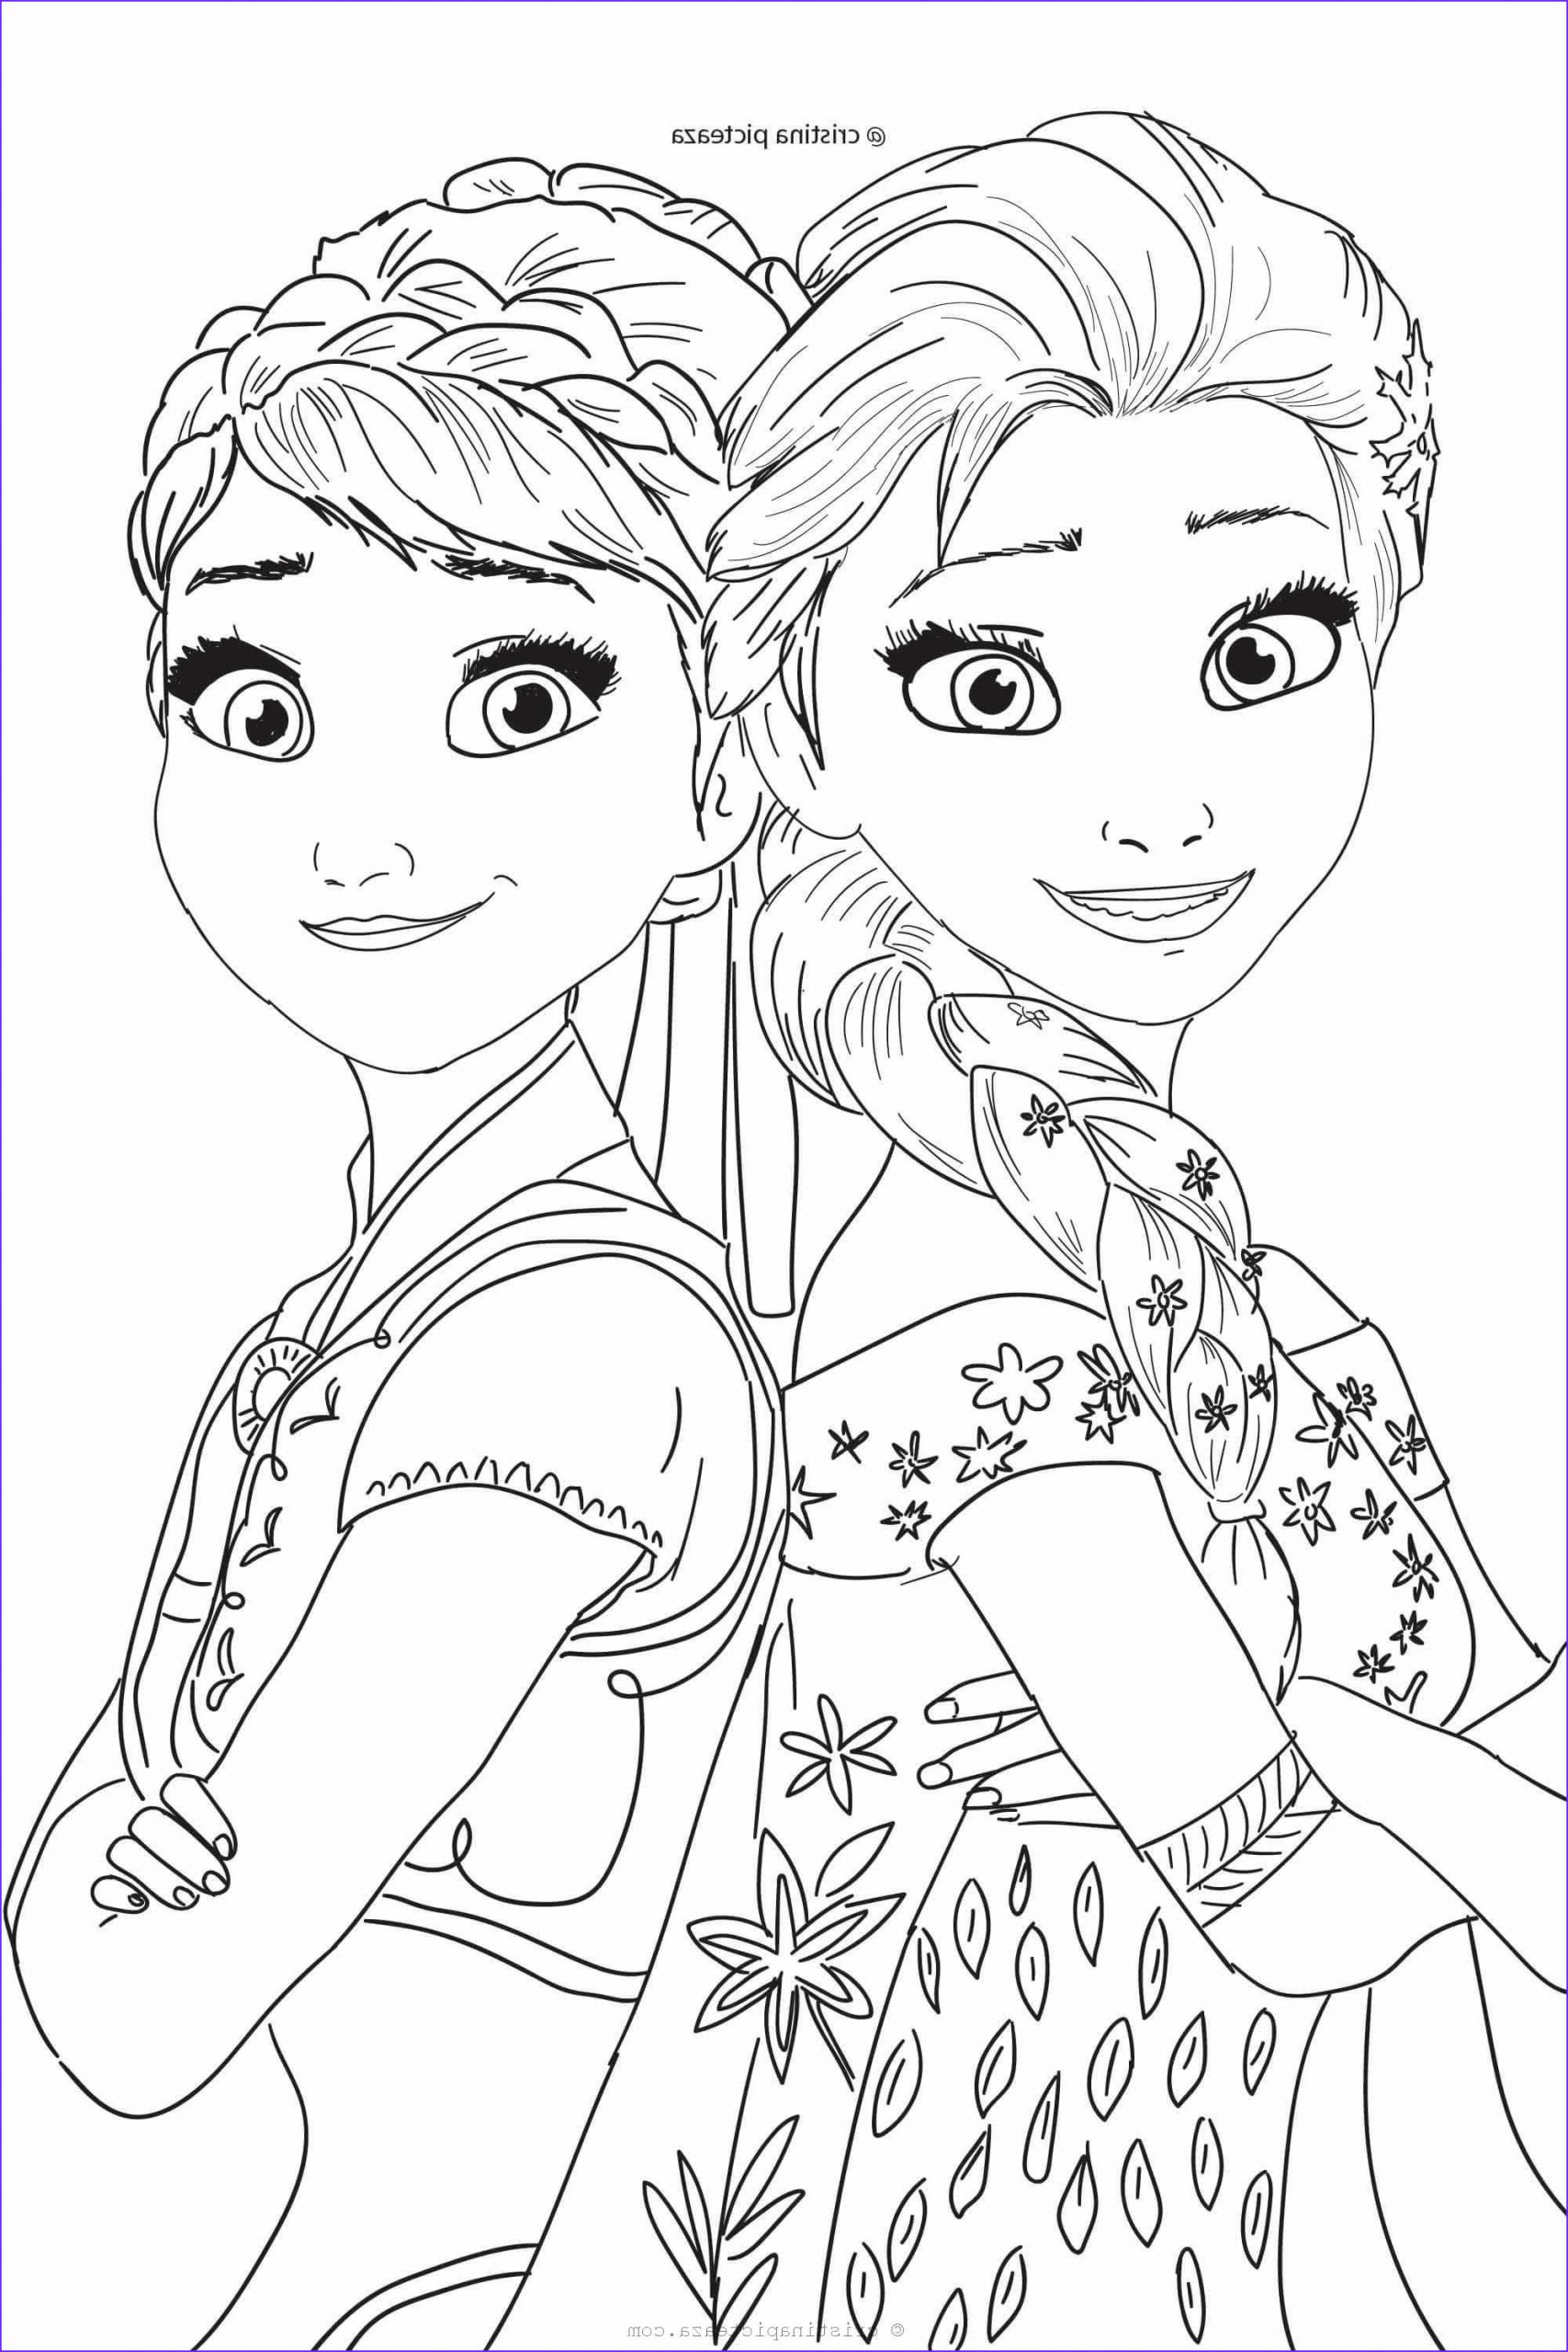 Frozen Coloring Page Free Printable Inspirational Photography Frozen 2 Coloring Pages – Elsa and Anna Coloring